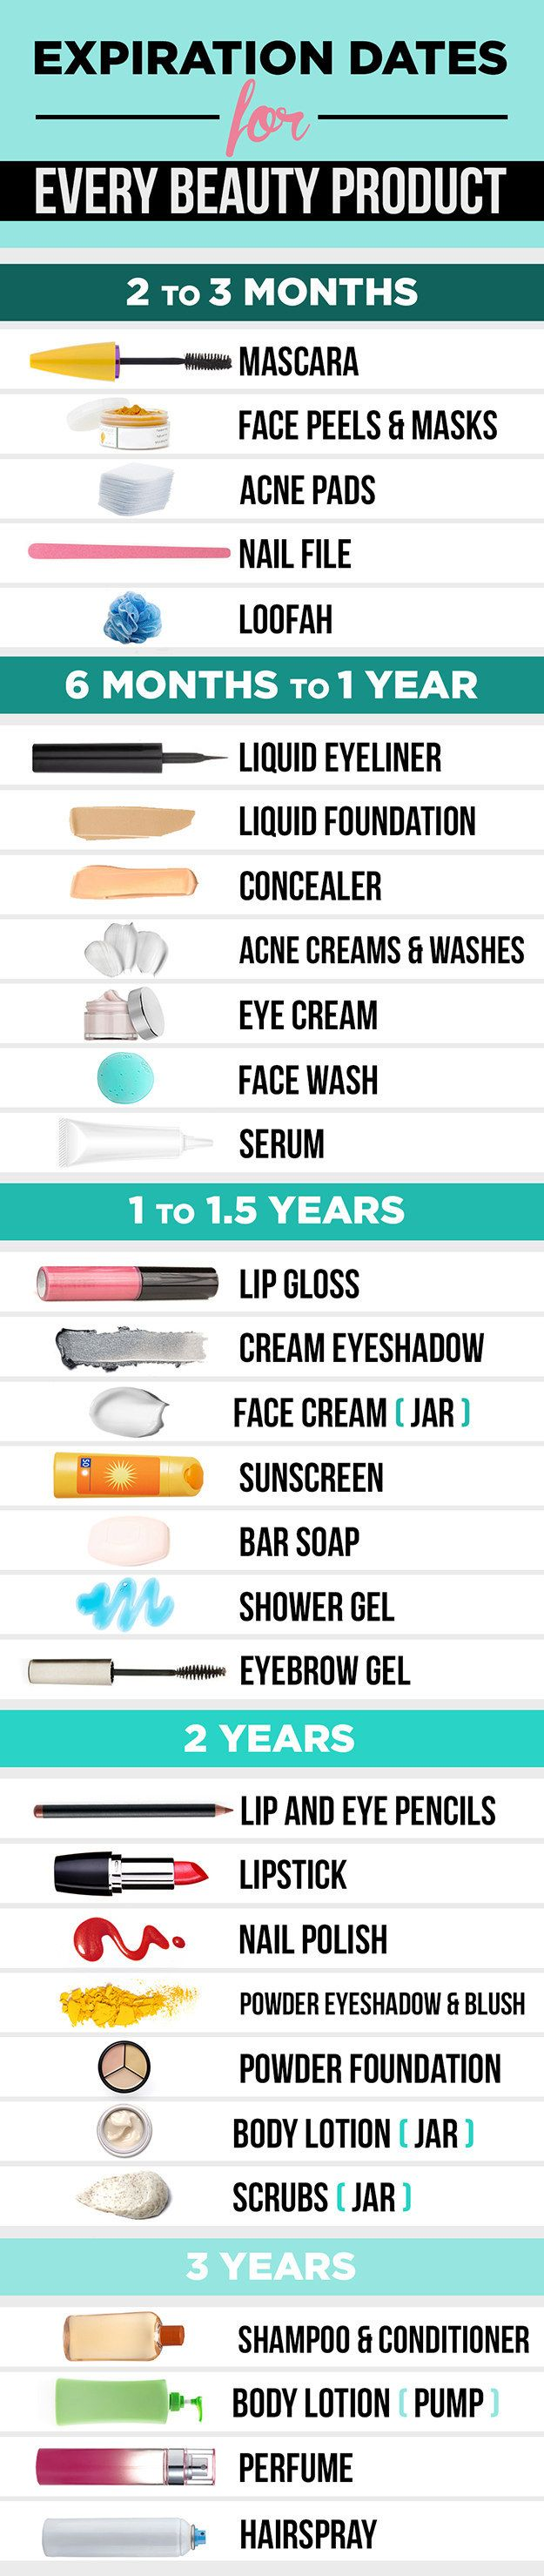 This is exactly how long you should be keeping every beauty product you own.